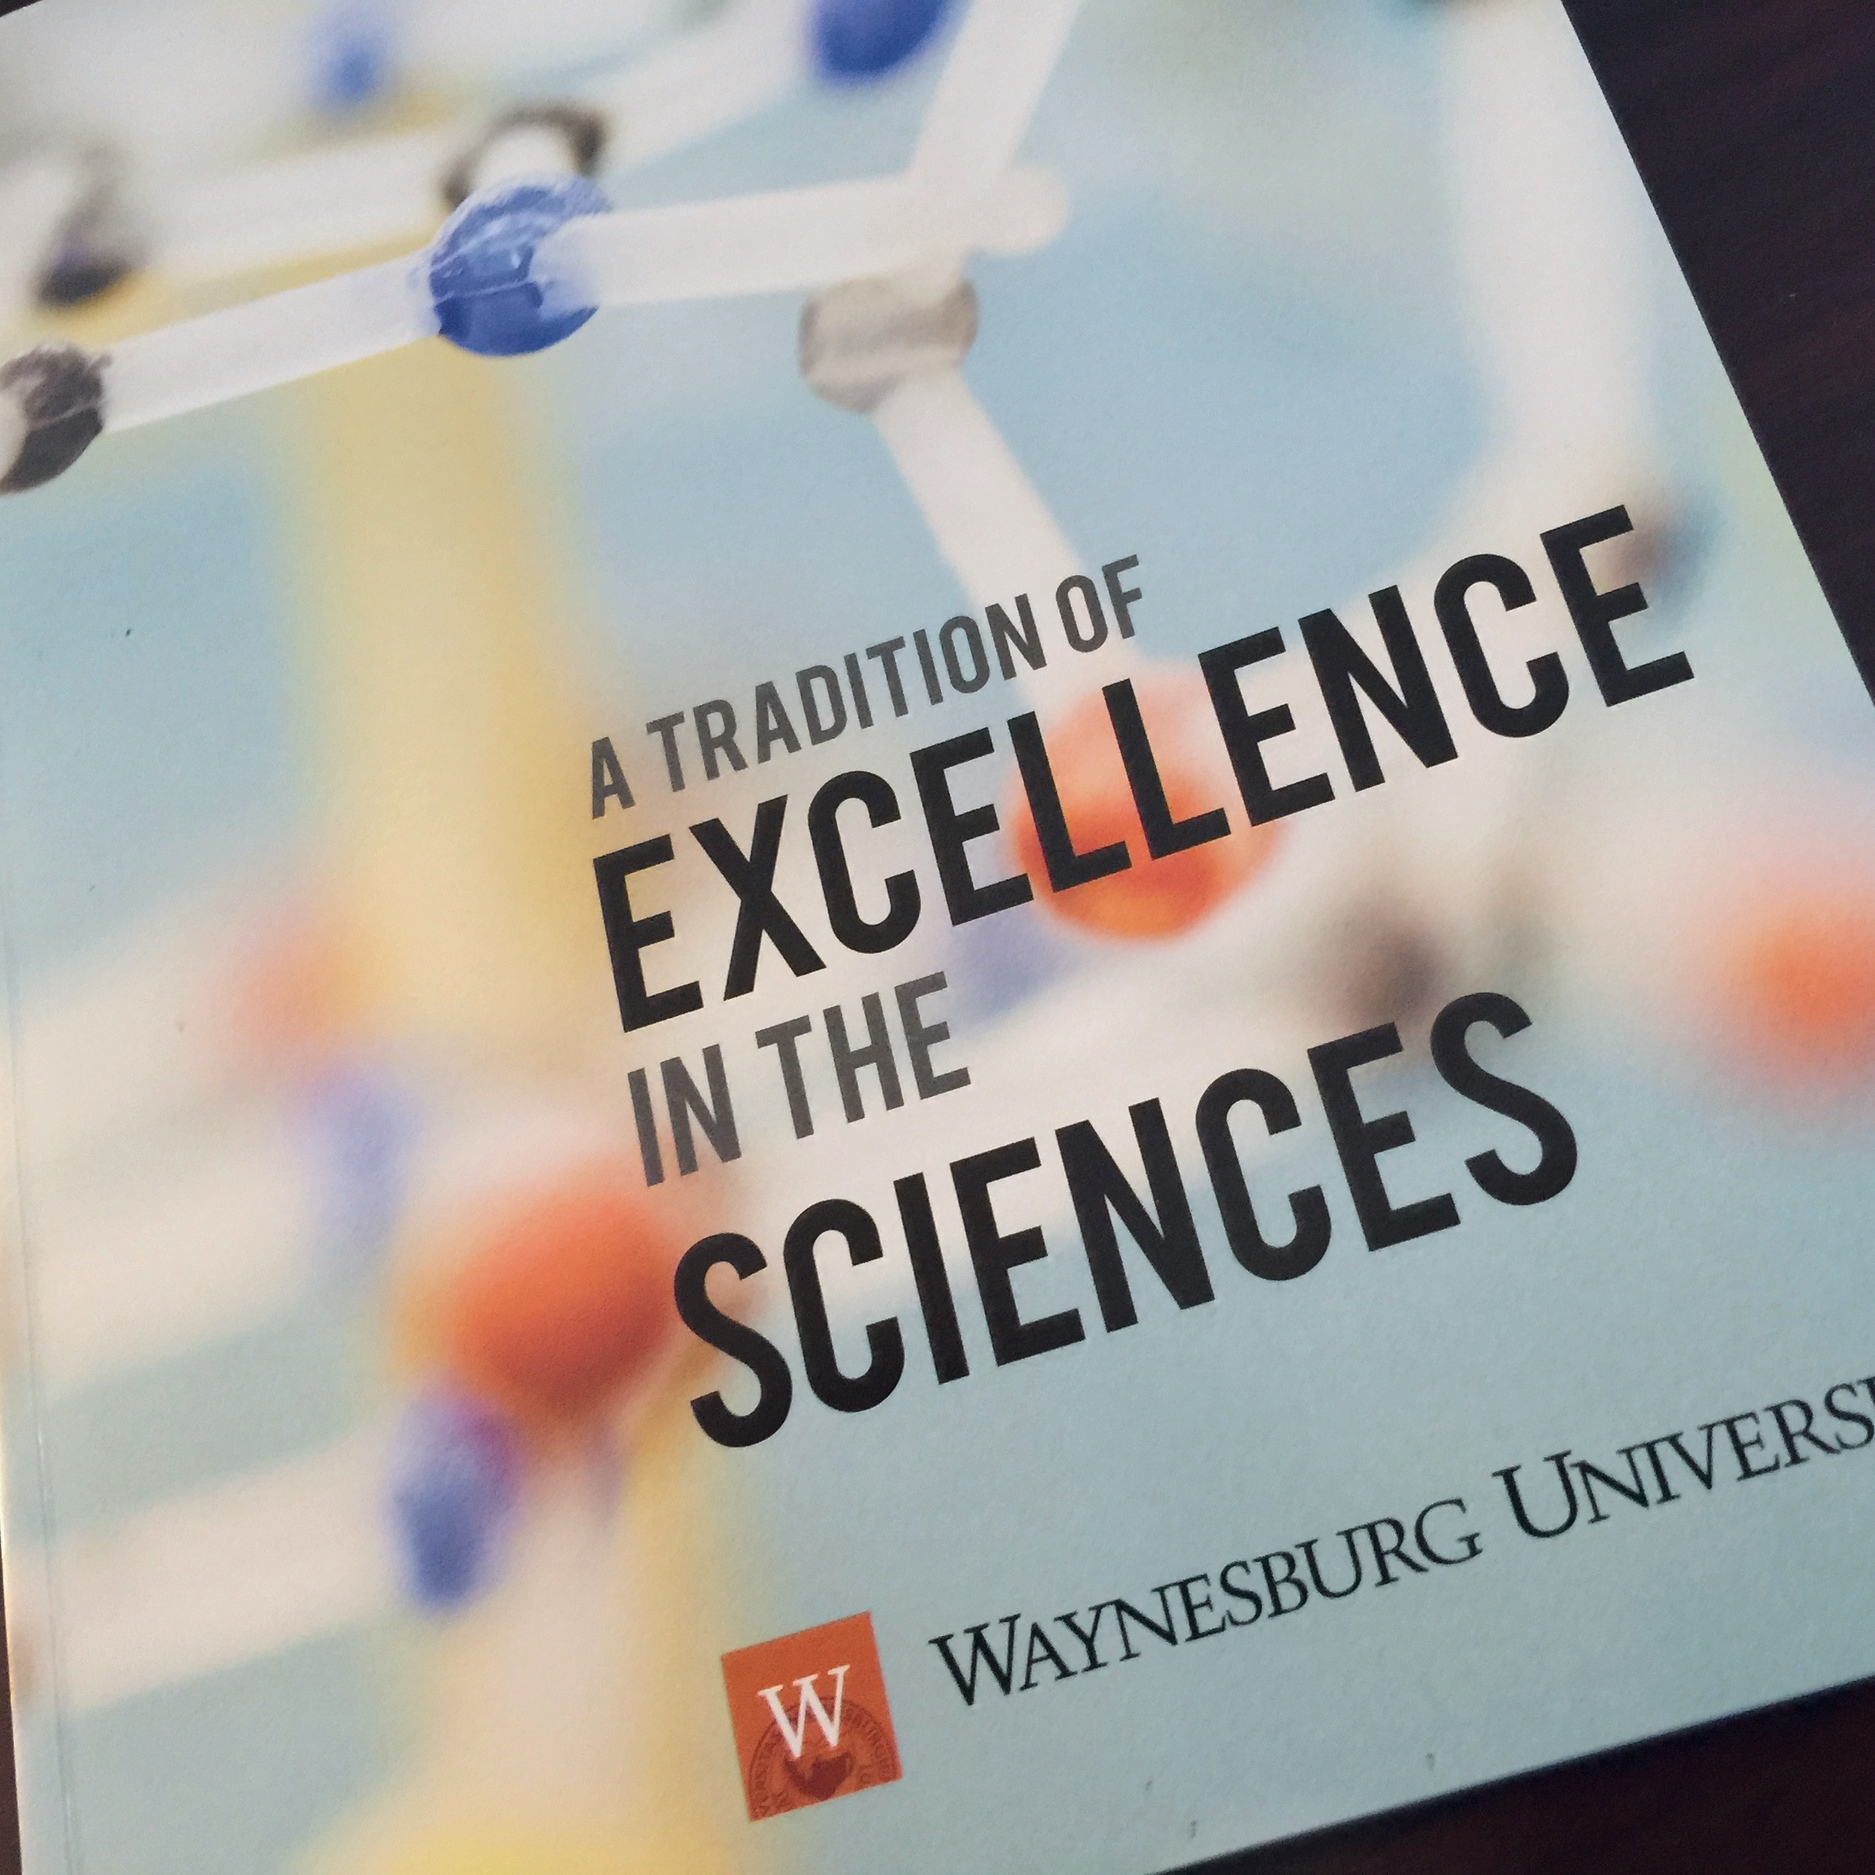 Stewart Hall and Center for Research & Development Publication